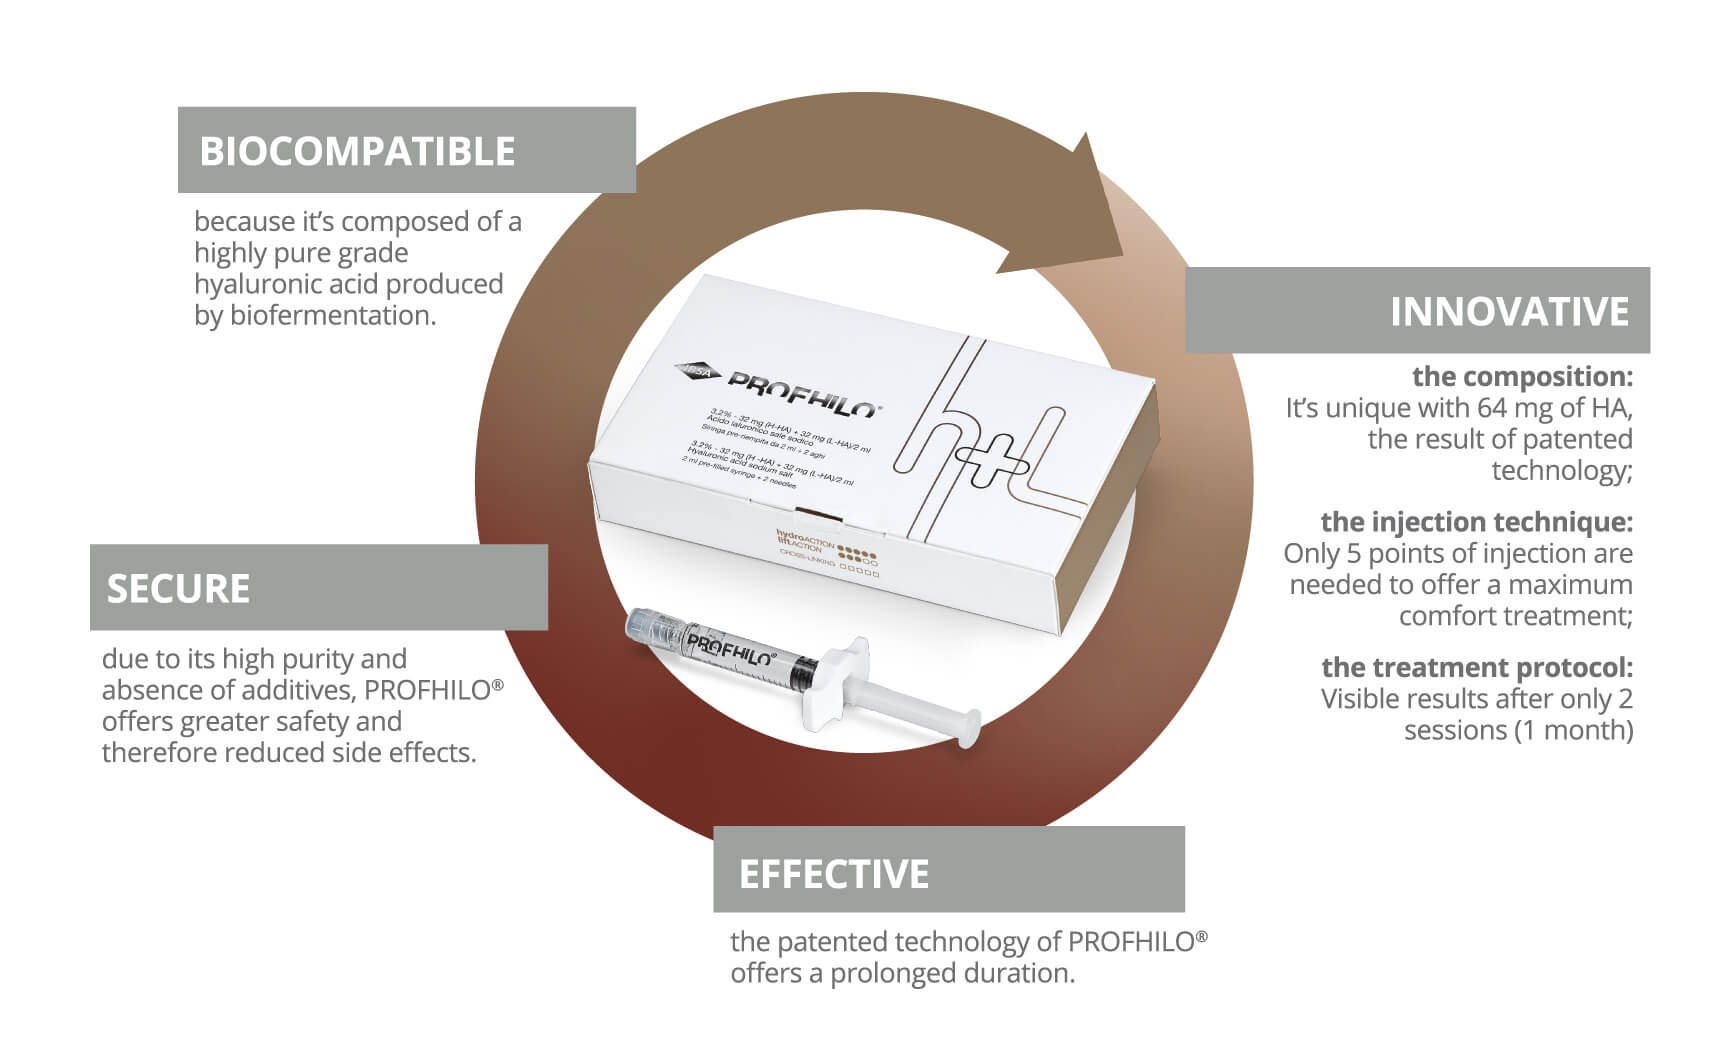 About the Profhilo treatment